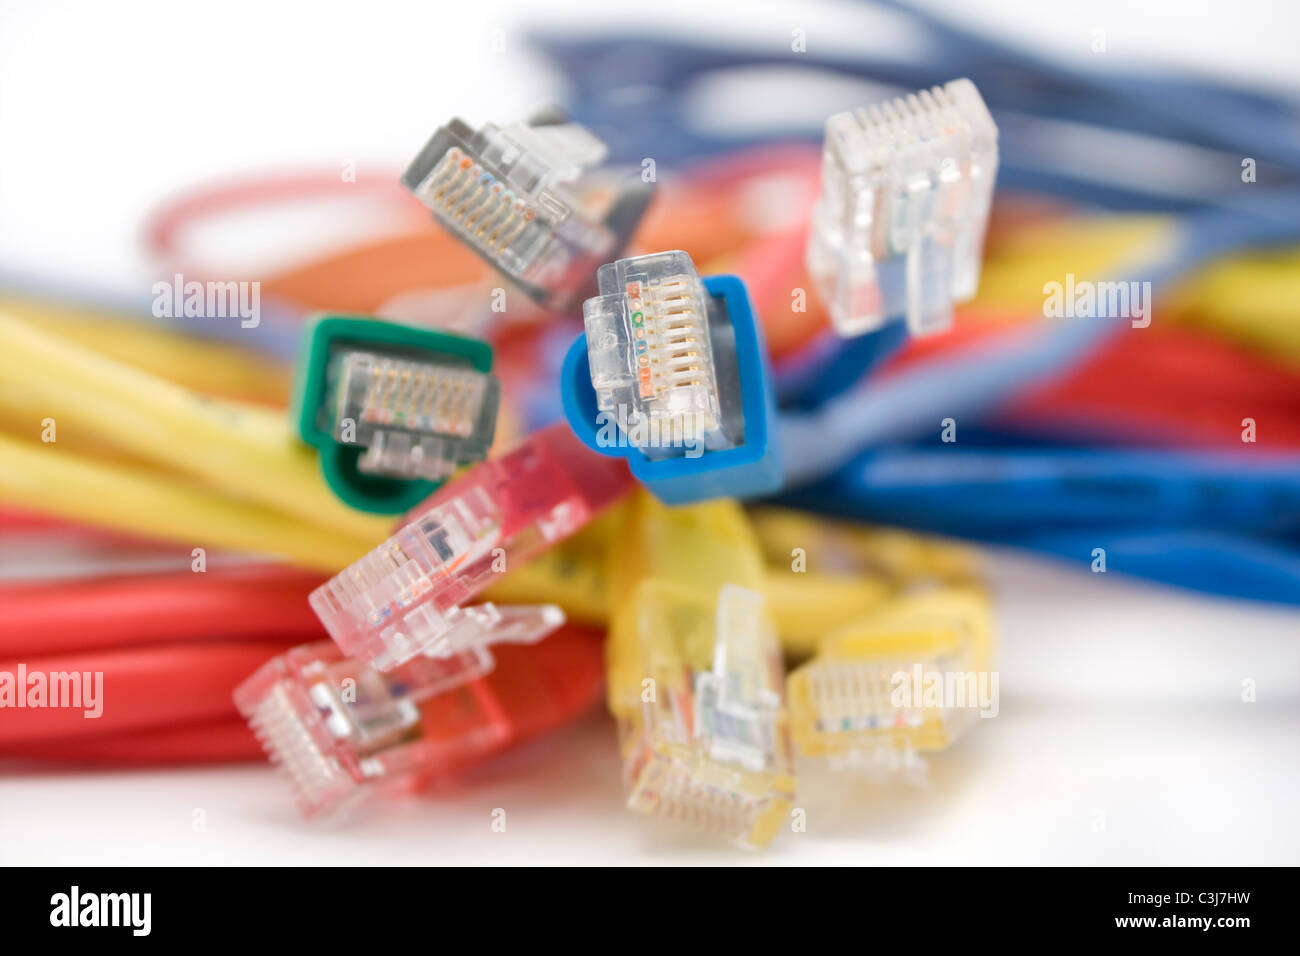 Utp Stock Photos Images Alamy Cable Wiring Colorful Cables Close Up Image